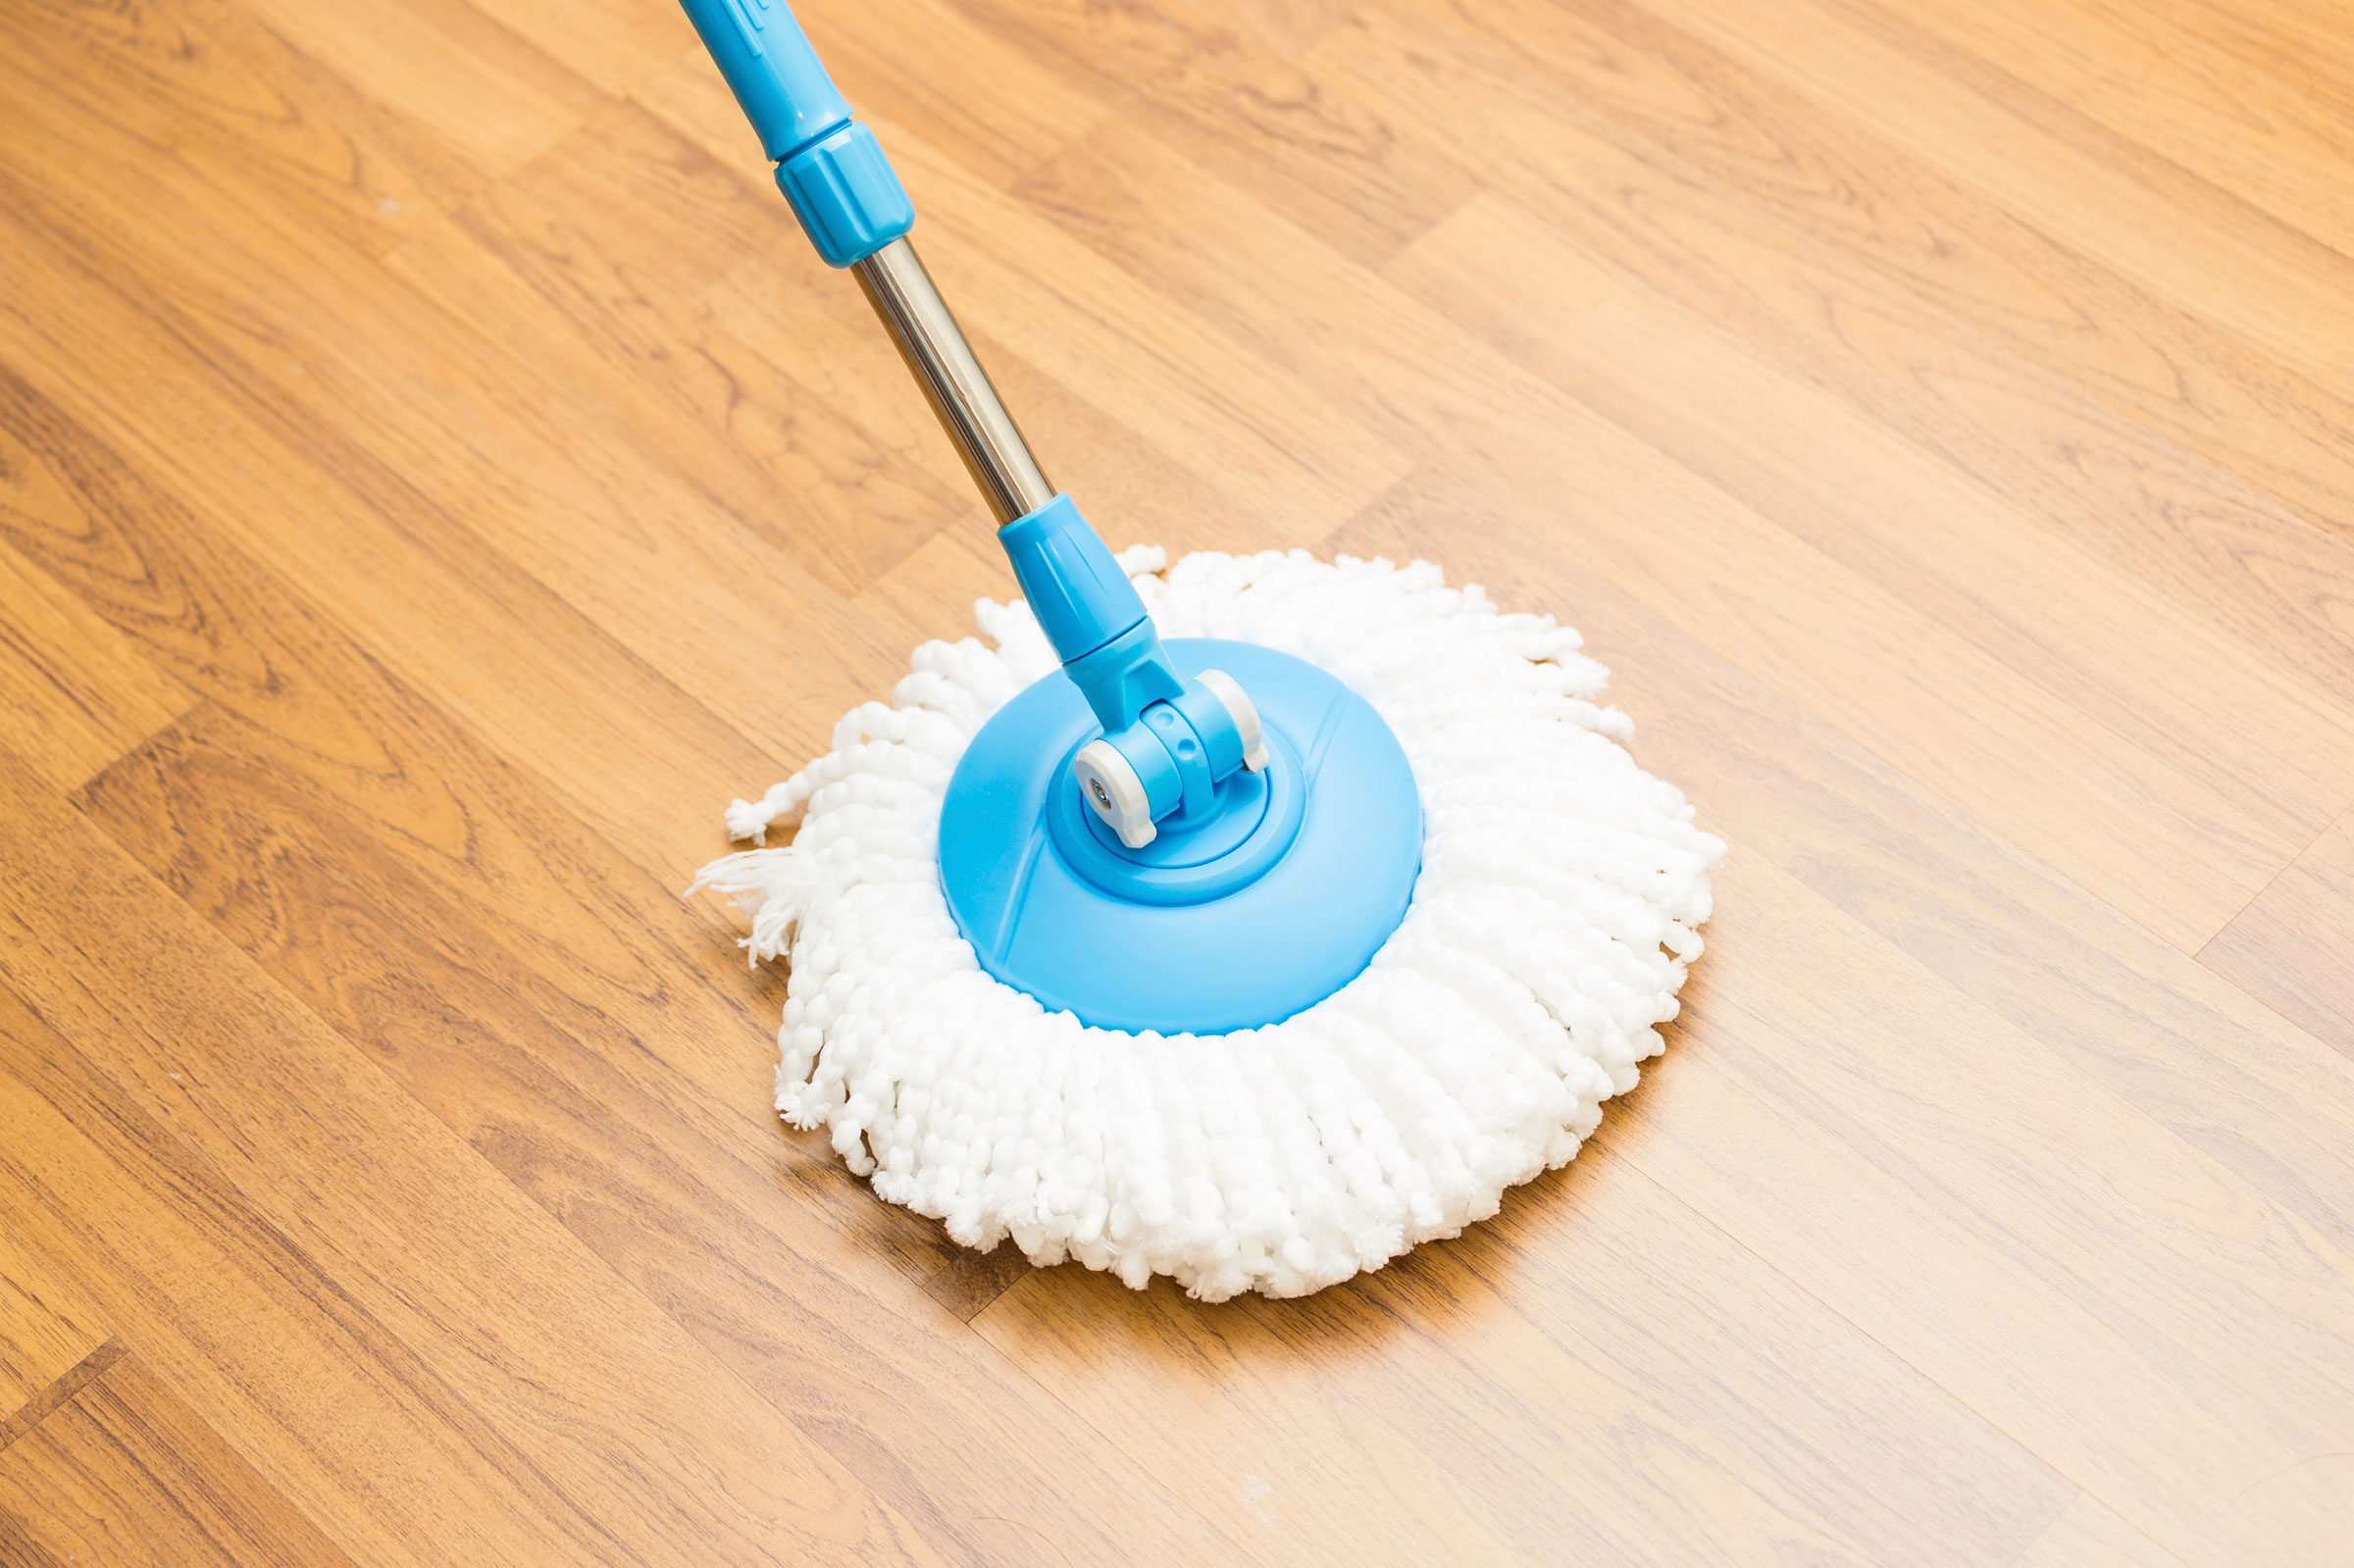 Clean Vinyl Floors